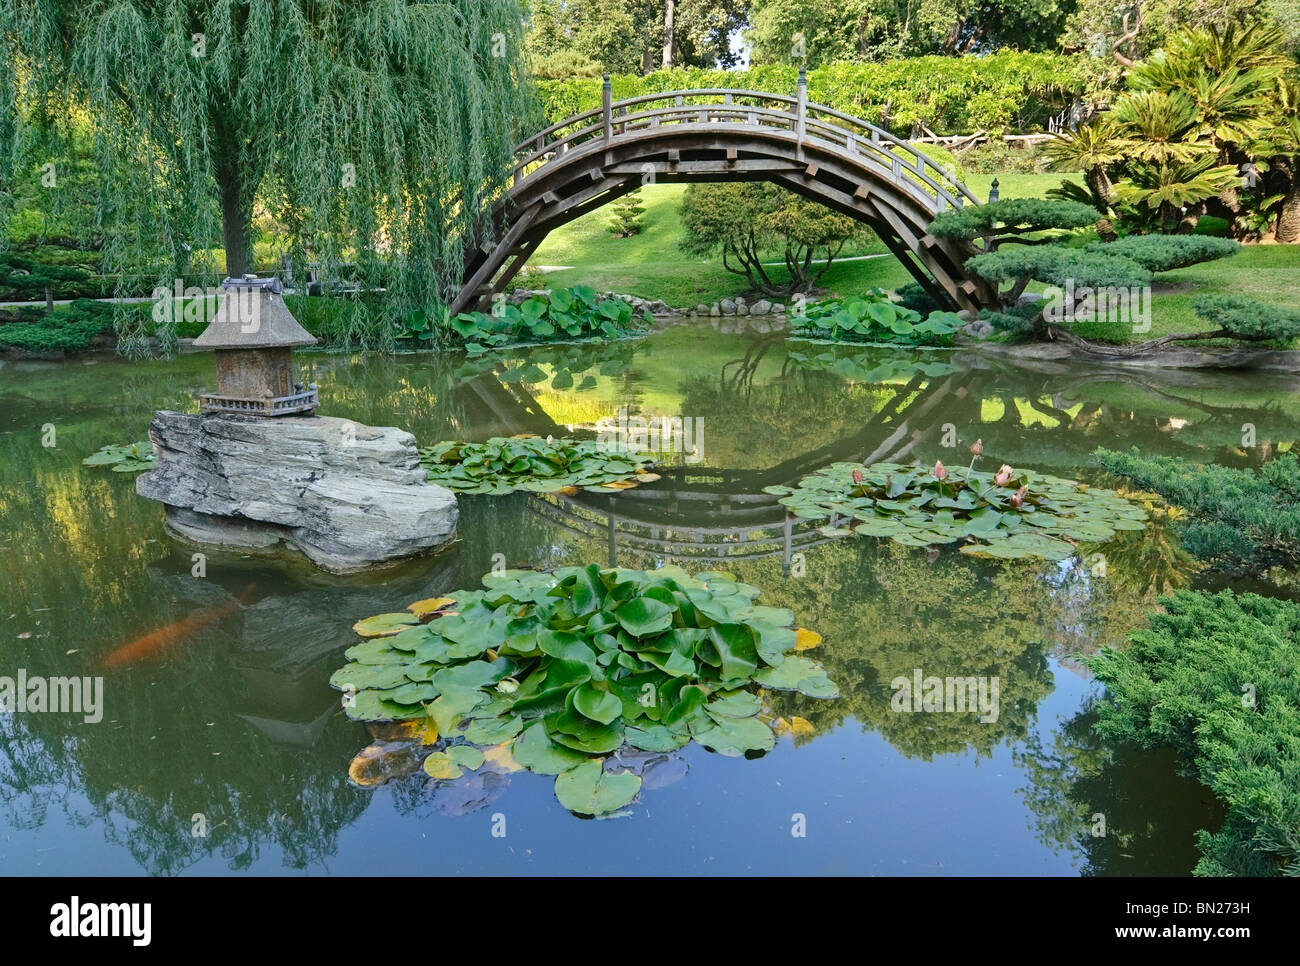 japanese garden with moon bridge and lotus pond with koi fish - Japanese Koi Garden